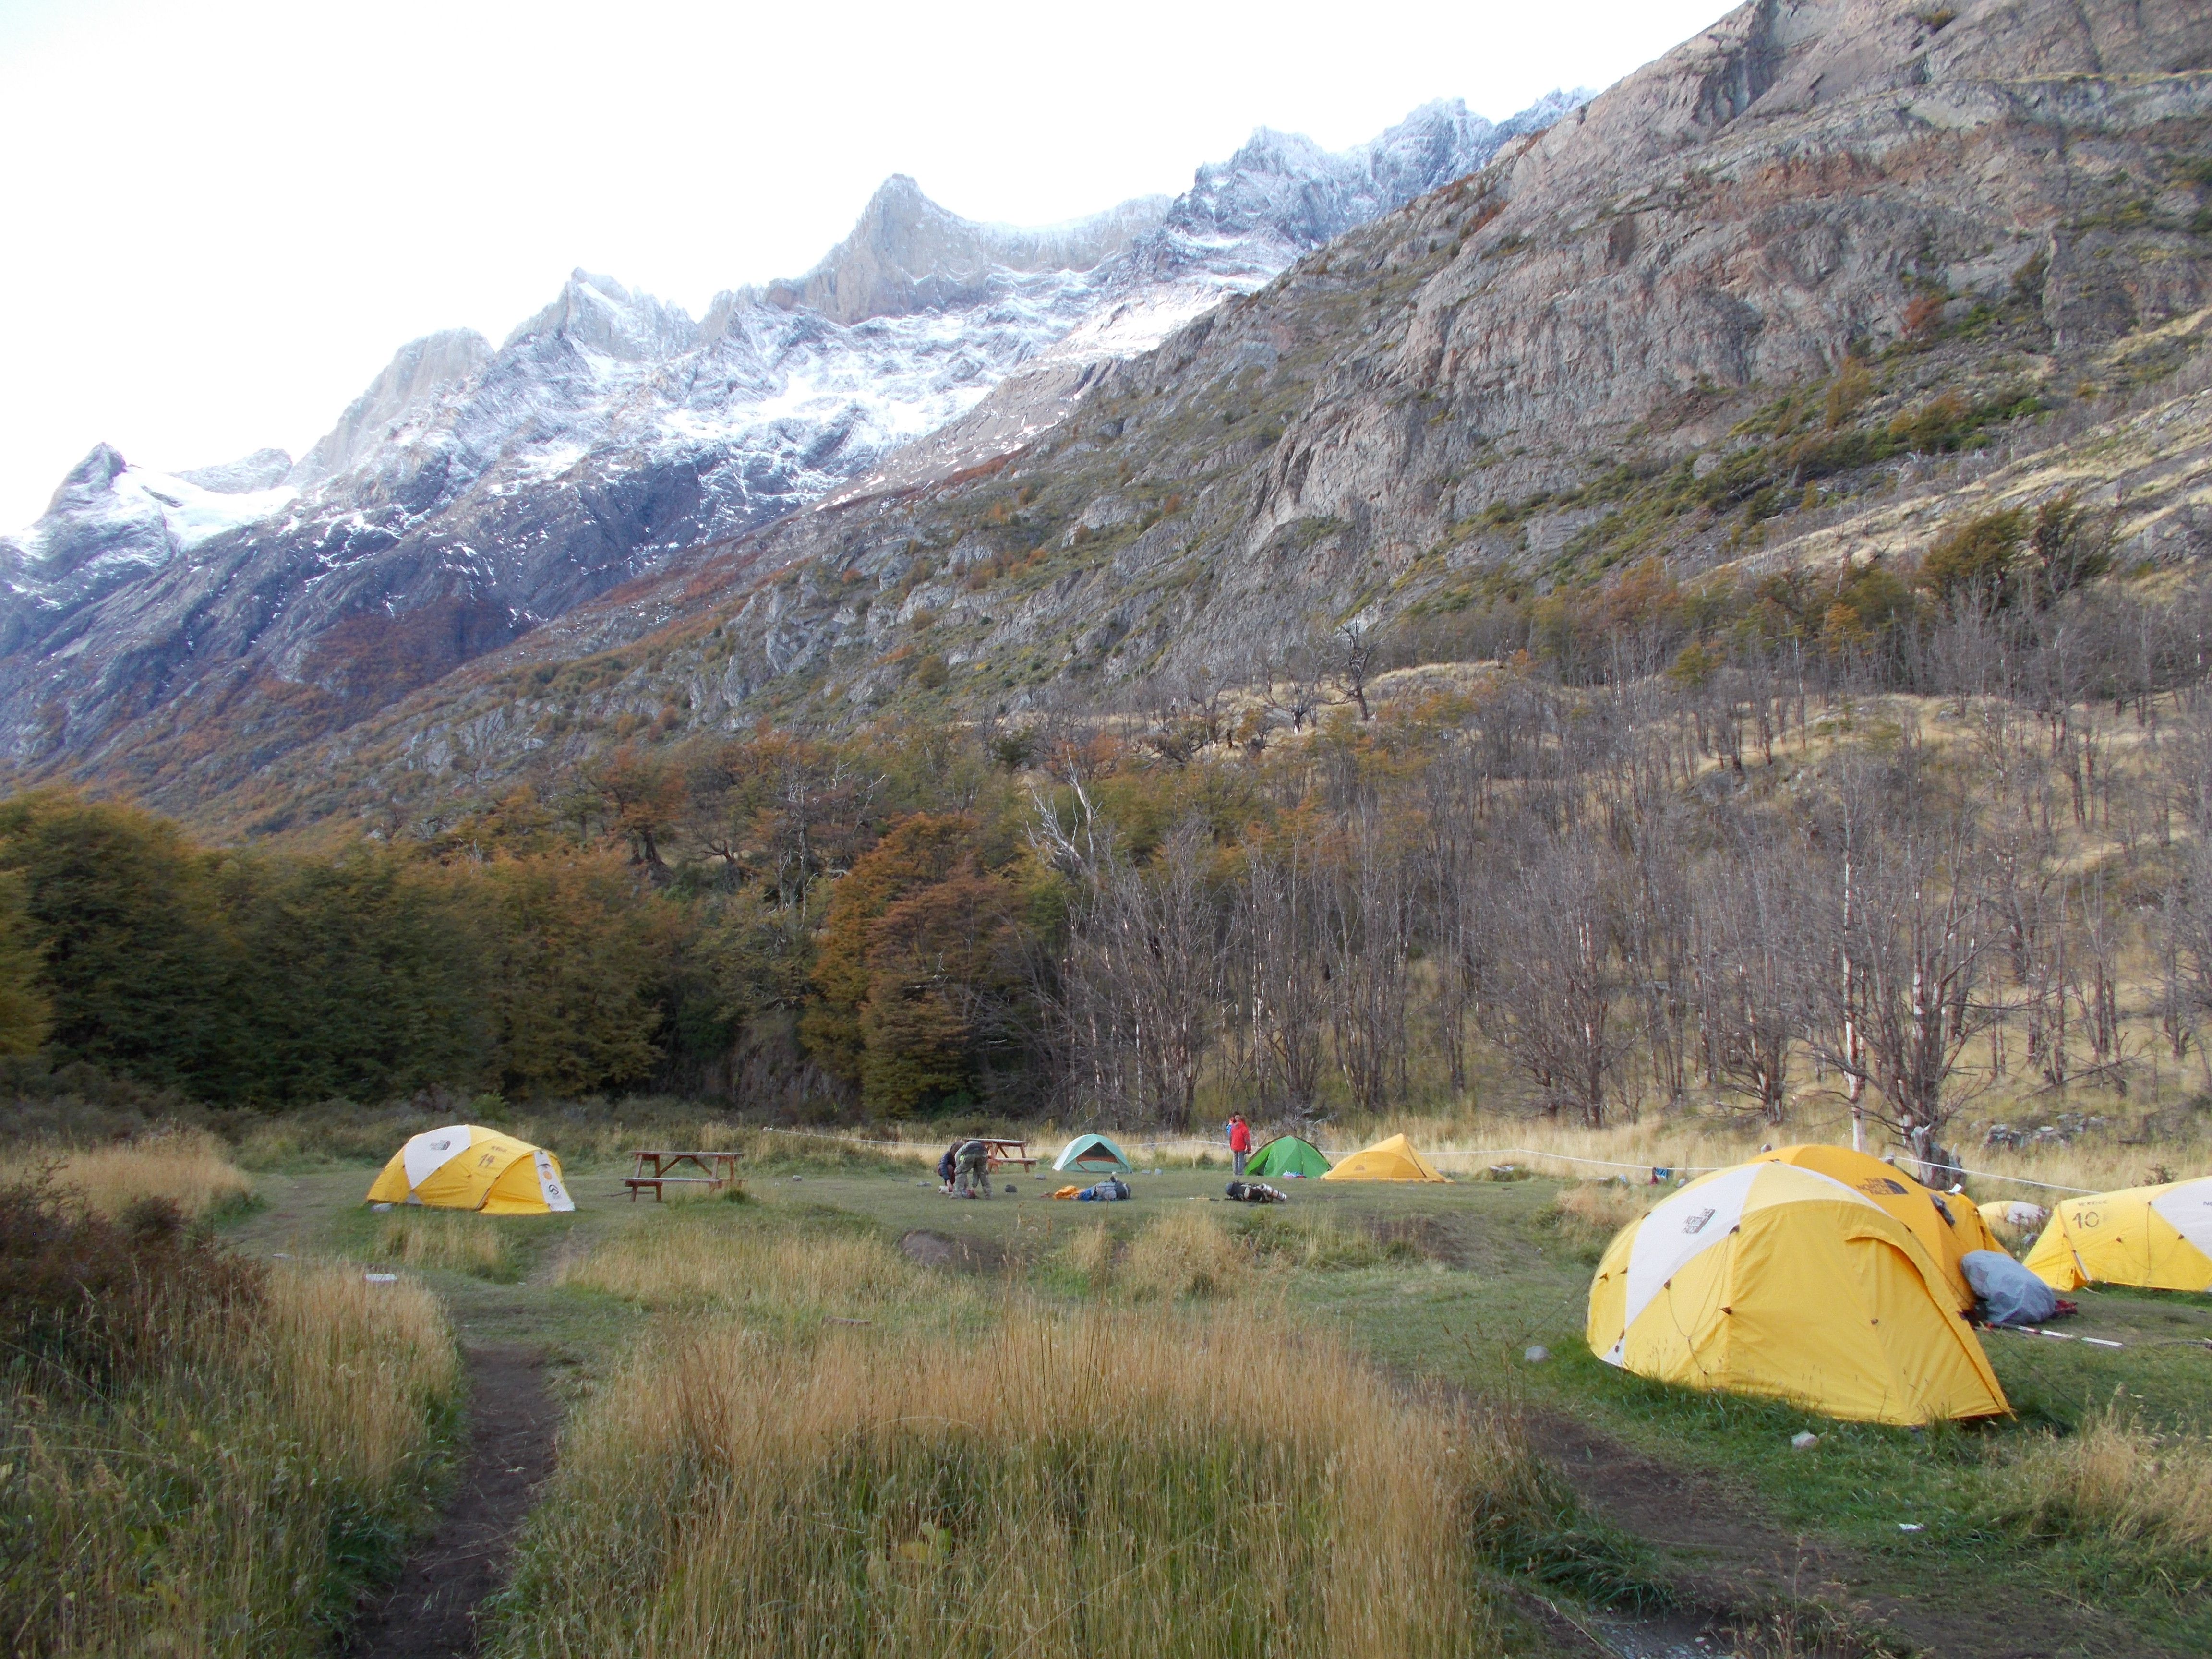 With my preparation complete it was time to head to the national park. Torres del Paine is about 2 hours drive from Puerto Natales. It normally costs 18000 ... & Torres Del Paine: The Big W | Just Passing Through